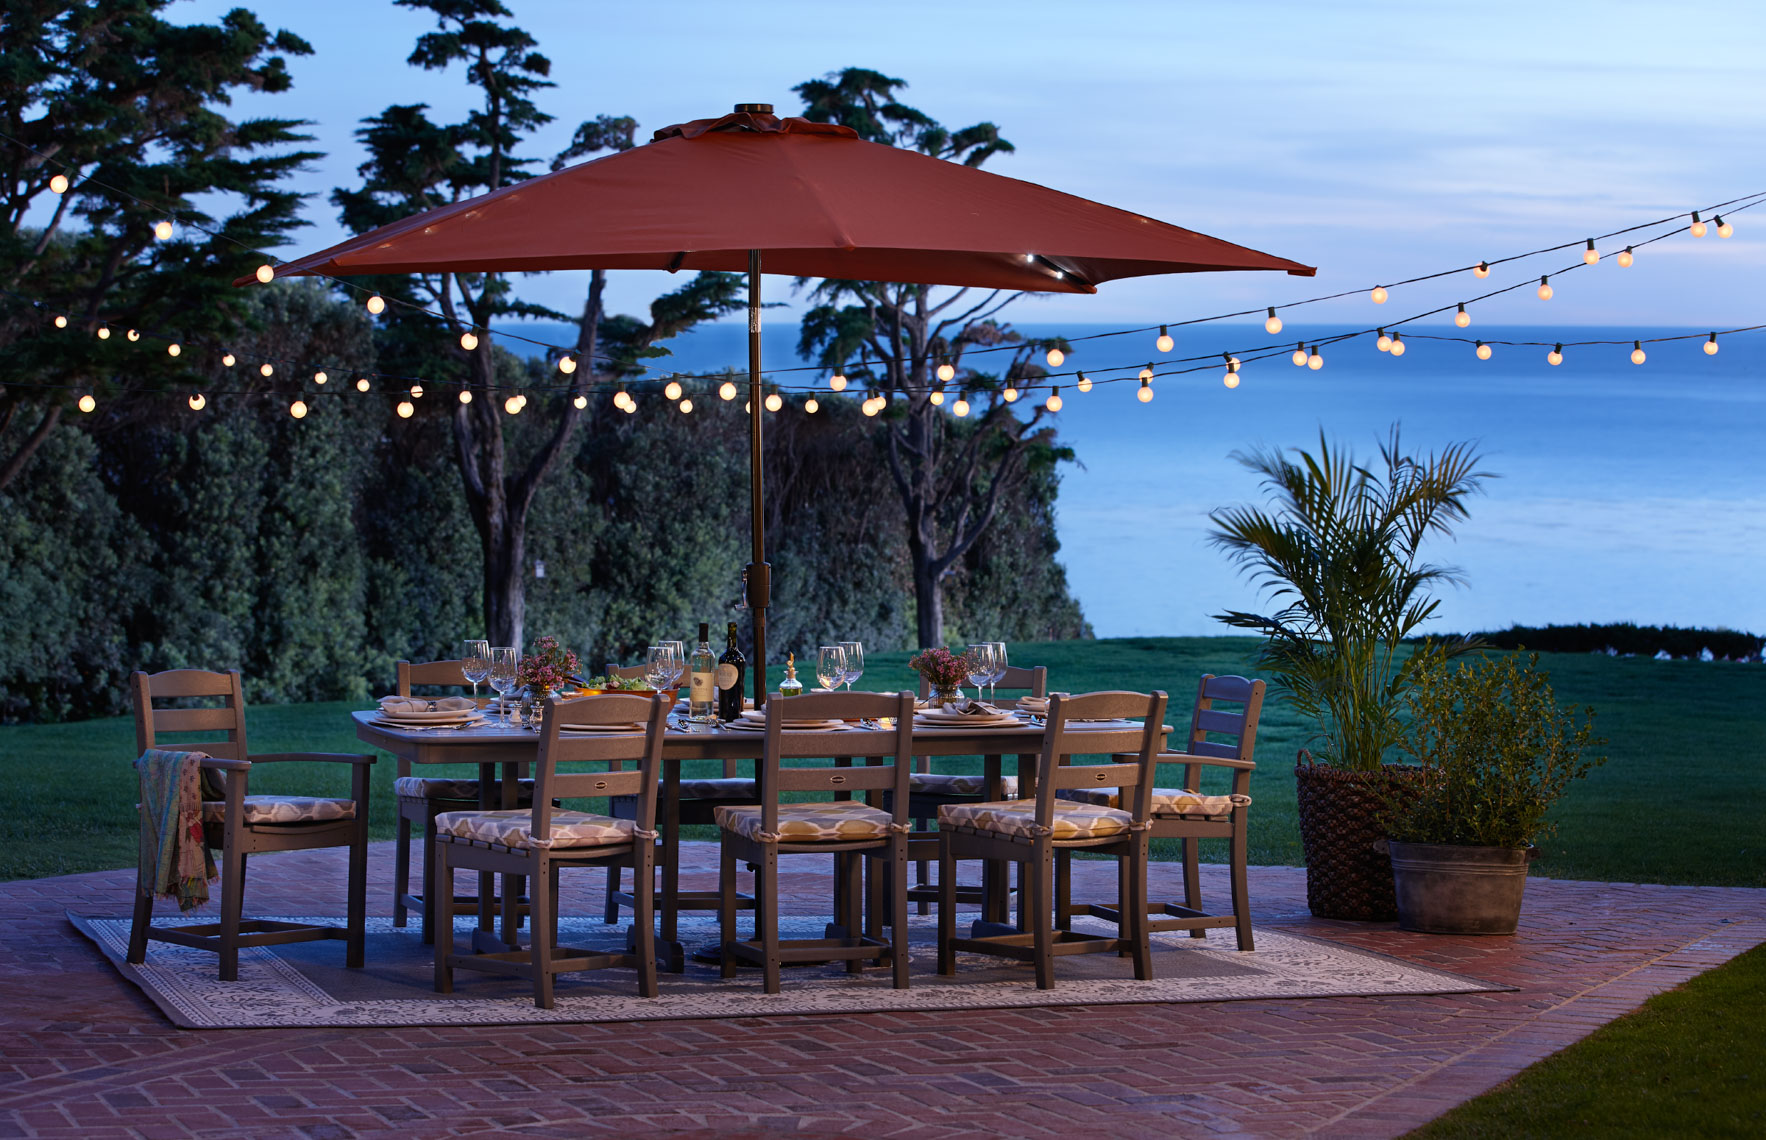 Wood outdoor furniture with red umbrella at dusk on patio by the ocean San Francisco lifestyle photographer